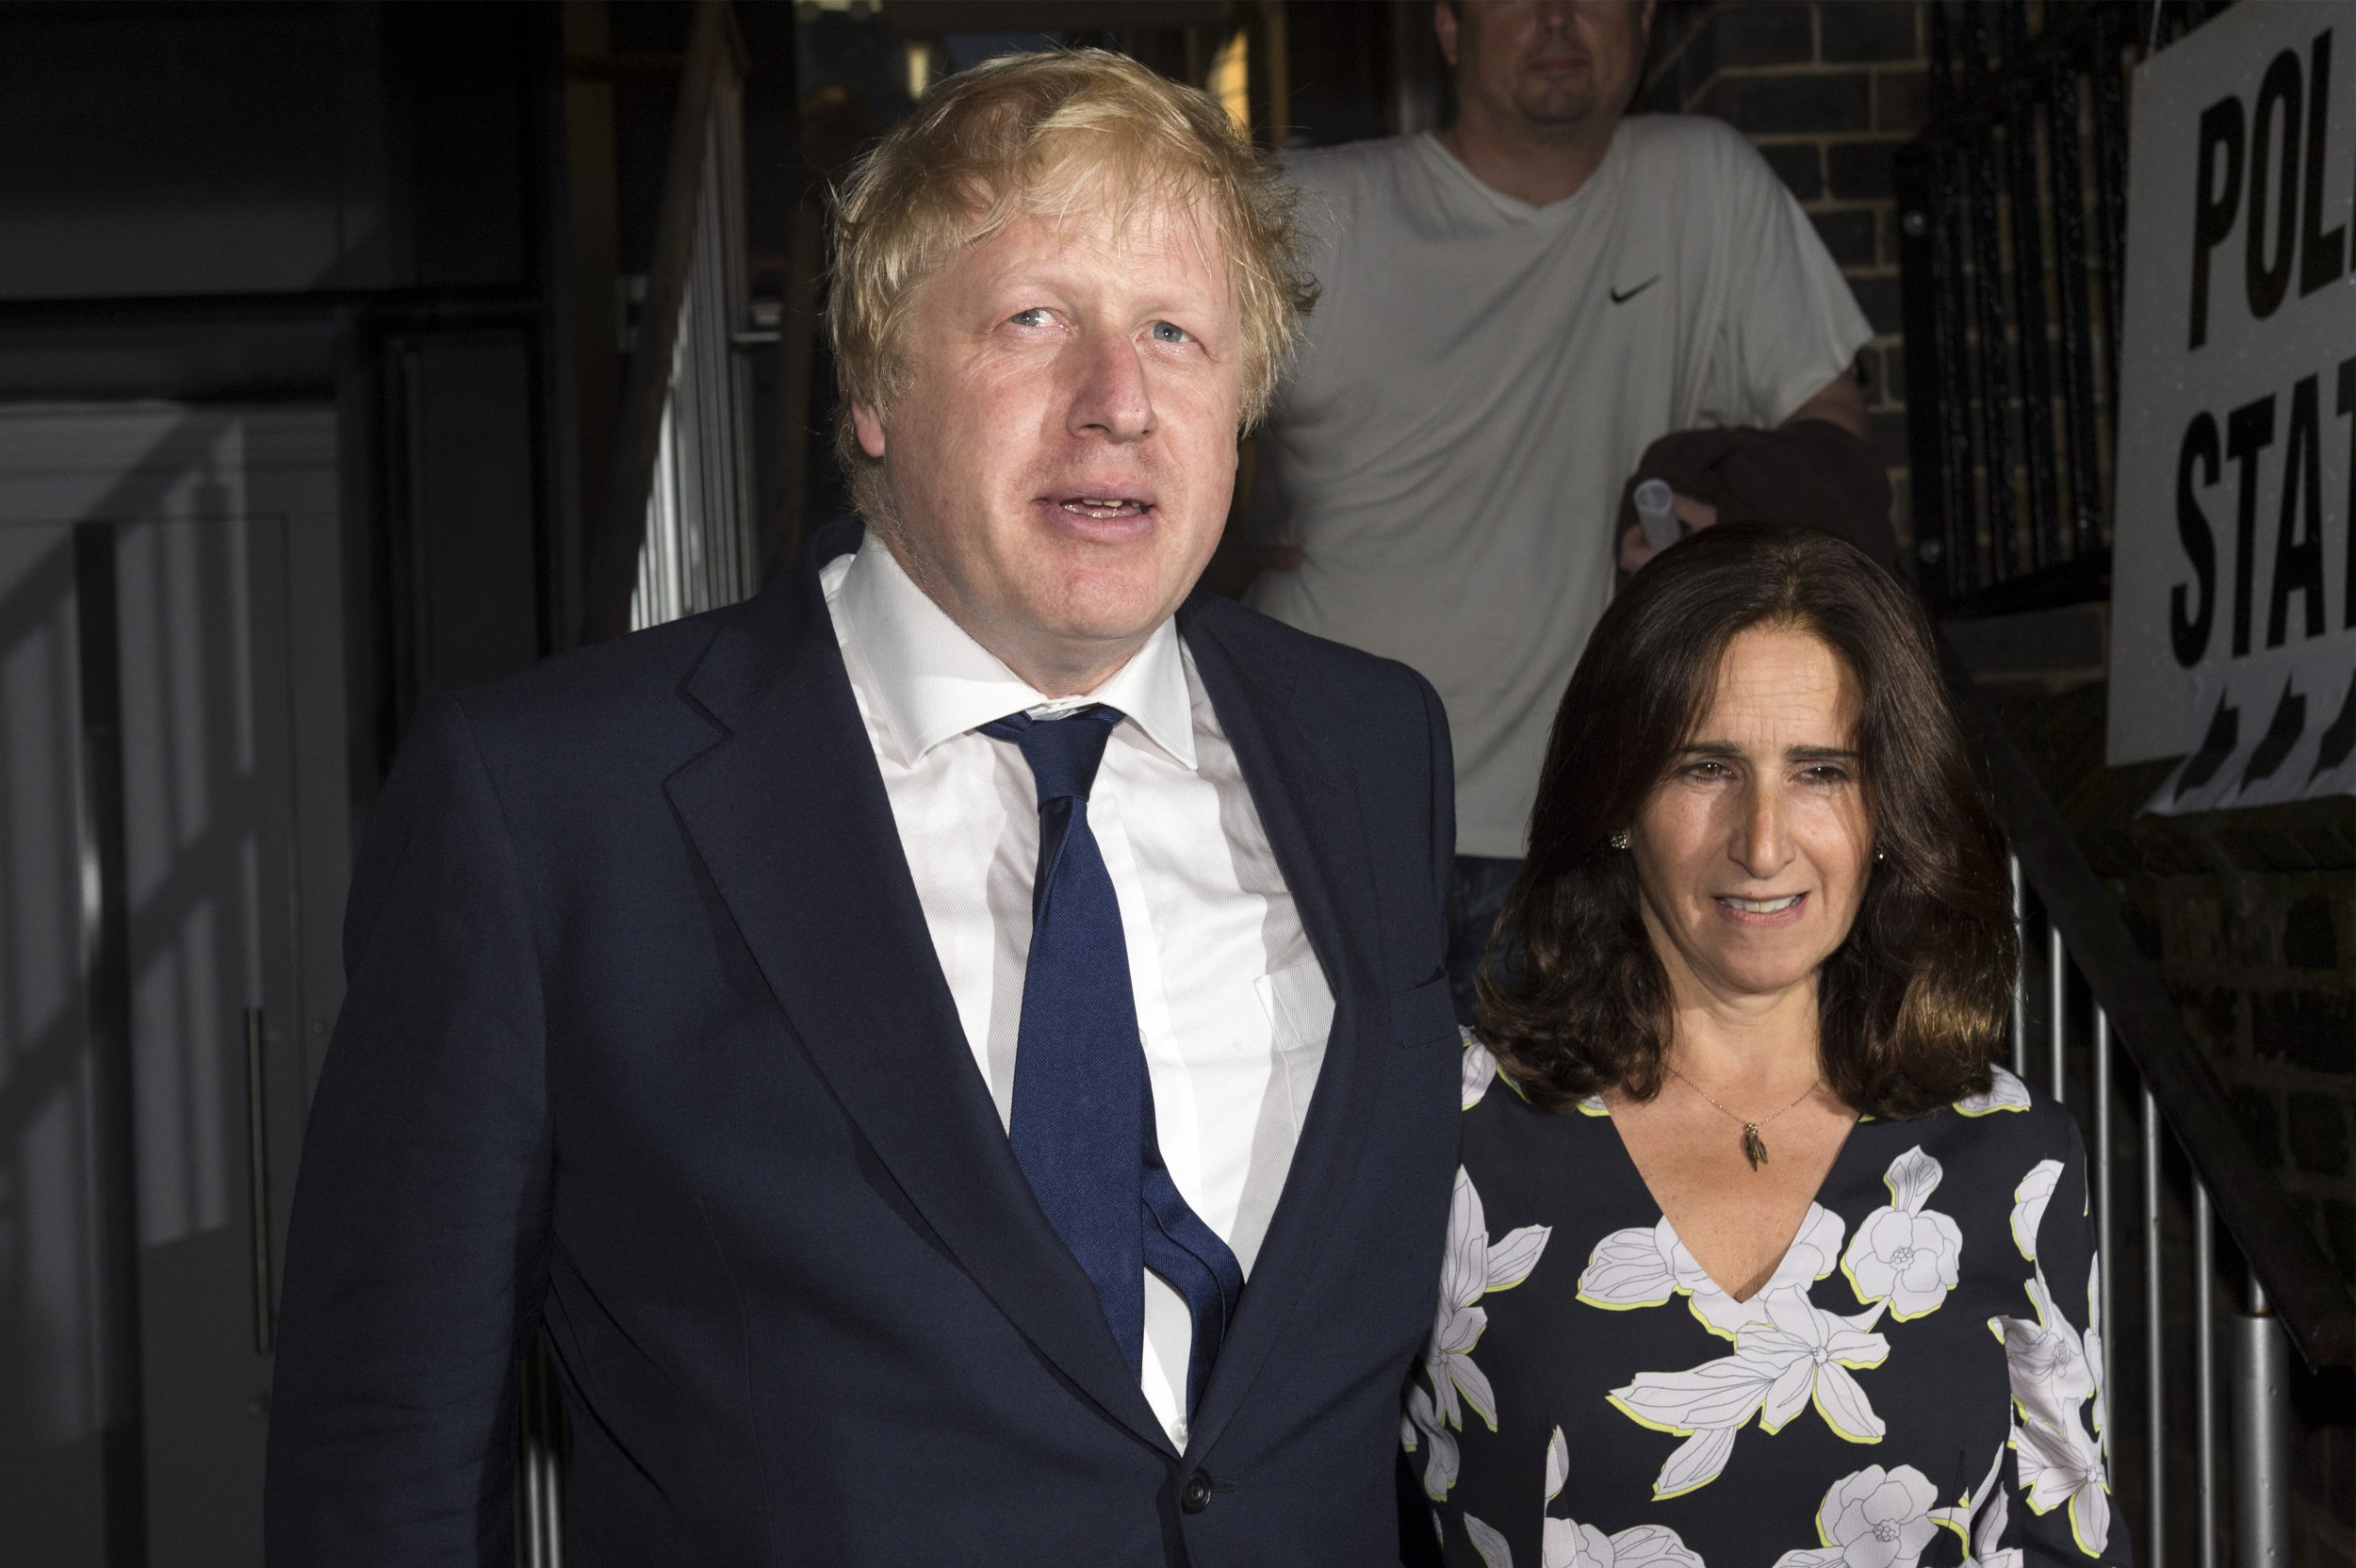 LONDON, UNITED KINGDOM - June 23: Boris Johnson (L) and wife Marina Wheeler (R) leave after casting their votes at a polling station on the EU Referendum in London, United Kingdom on June 23, 2016 (Photo by Ray Tang/Anadolu Agency/Getty Images)